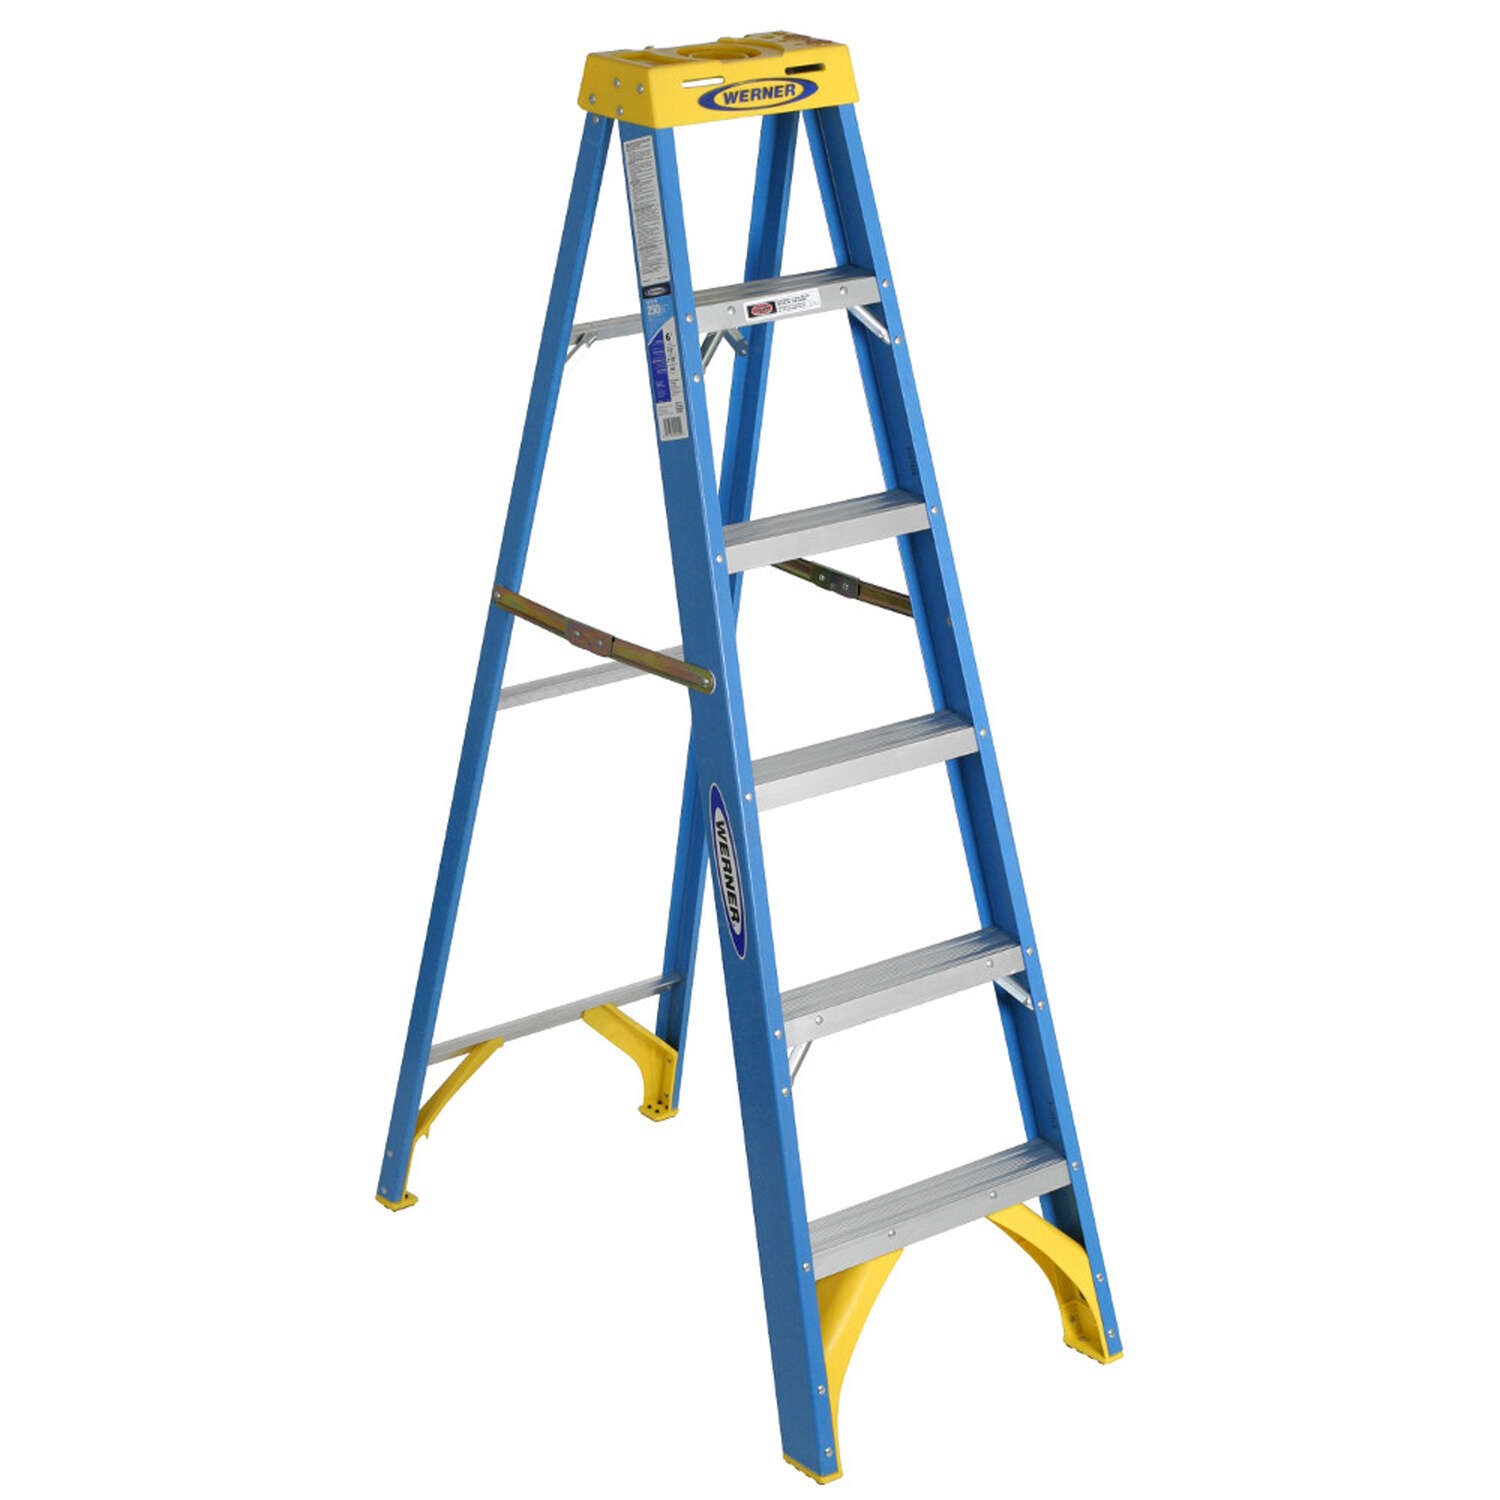 Werner  6 ft. H x 22 in. W Fiberglass  Step Ladder  Type I  250 lb. capacity